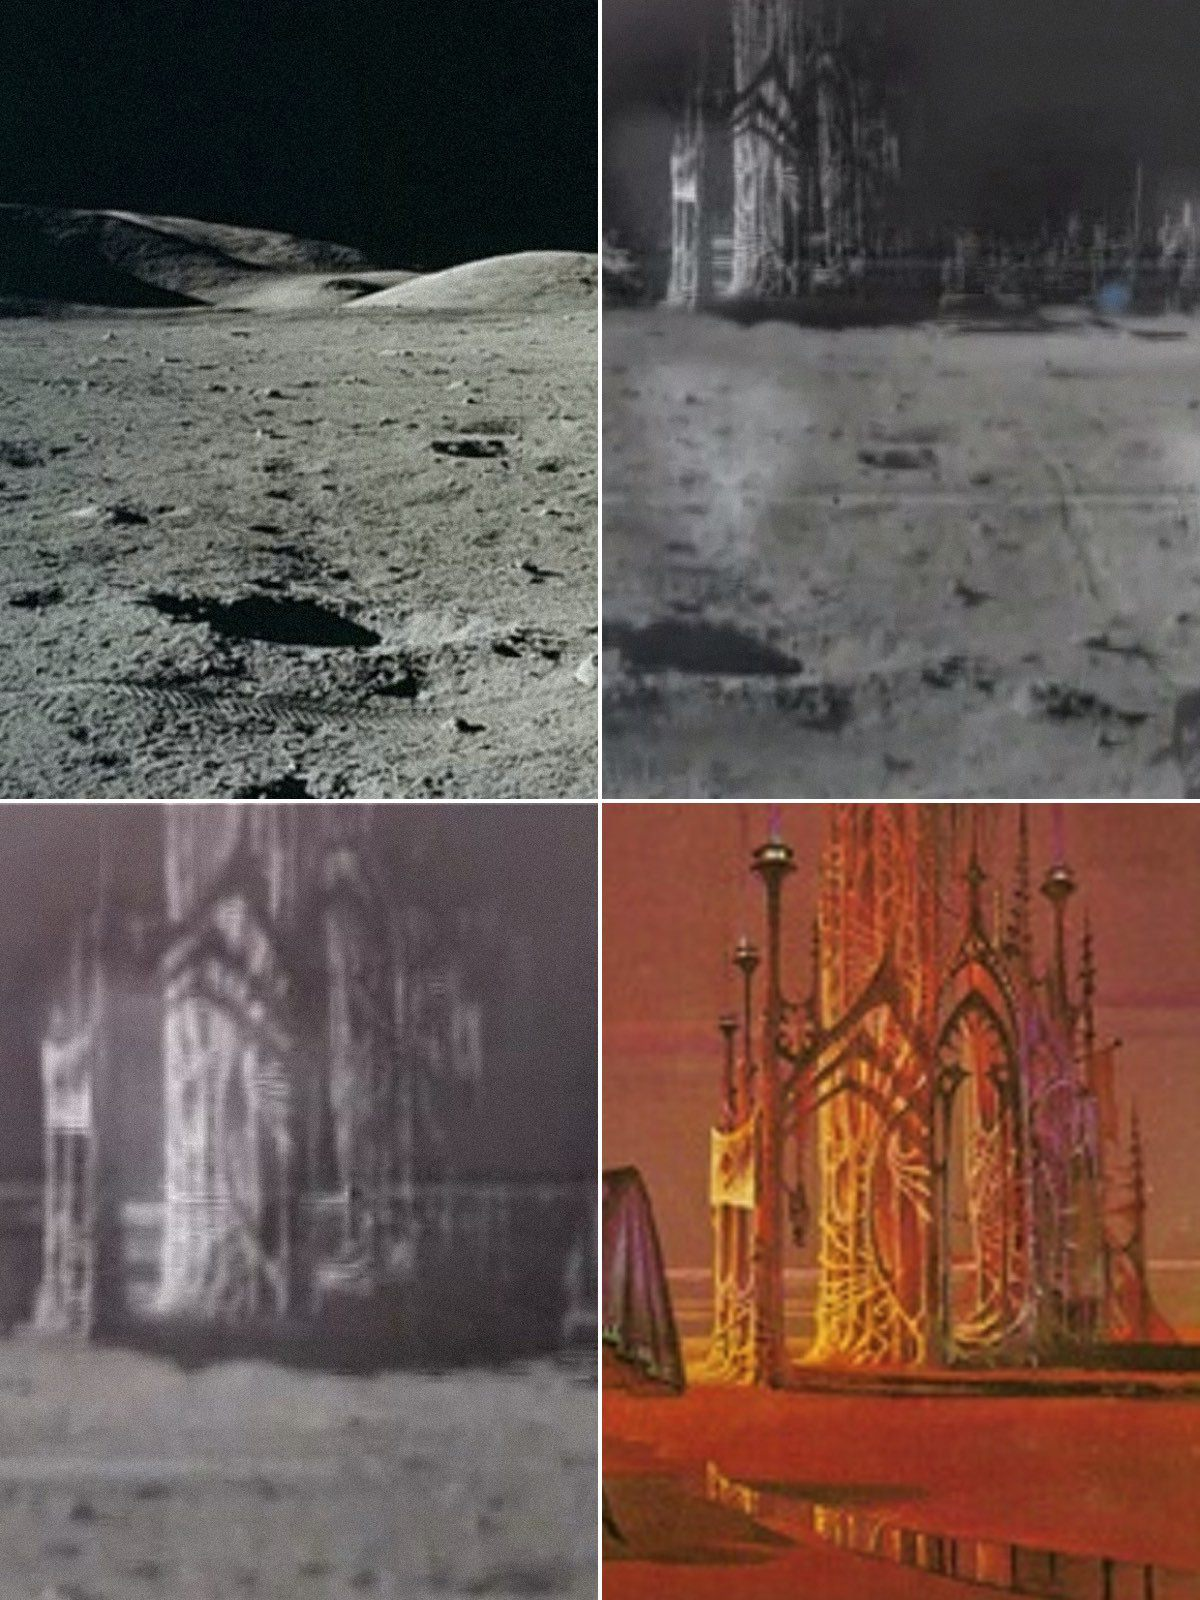 The moon city in the videos is a composite of NASA photos and the artwork of Bruce Pennington